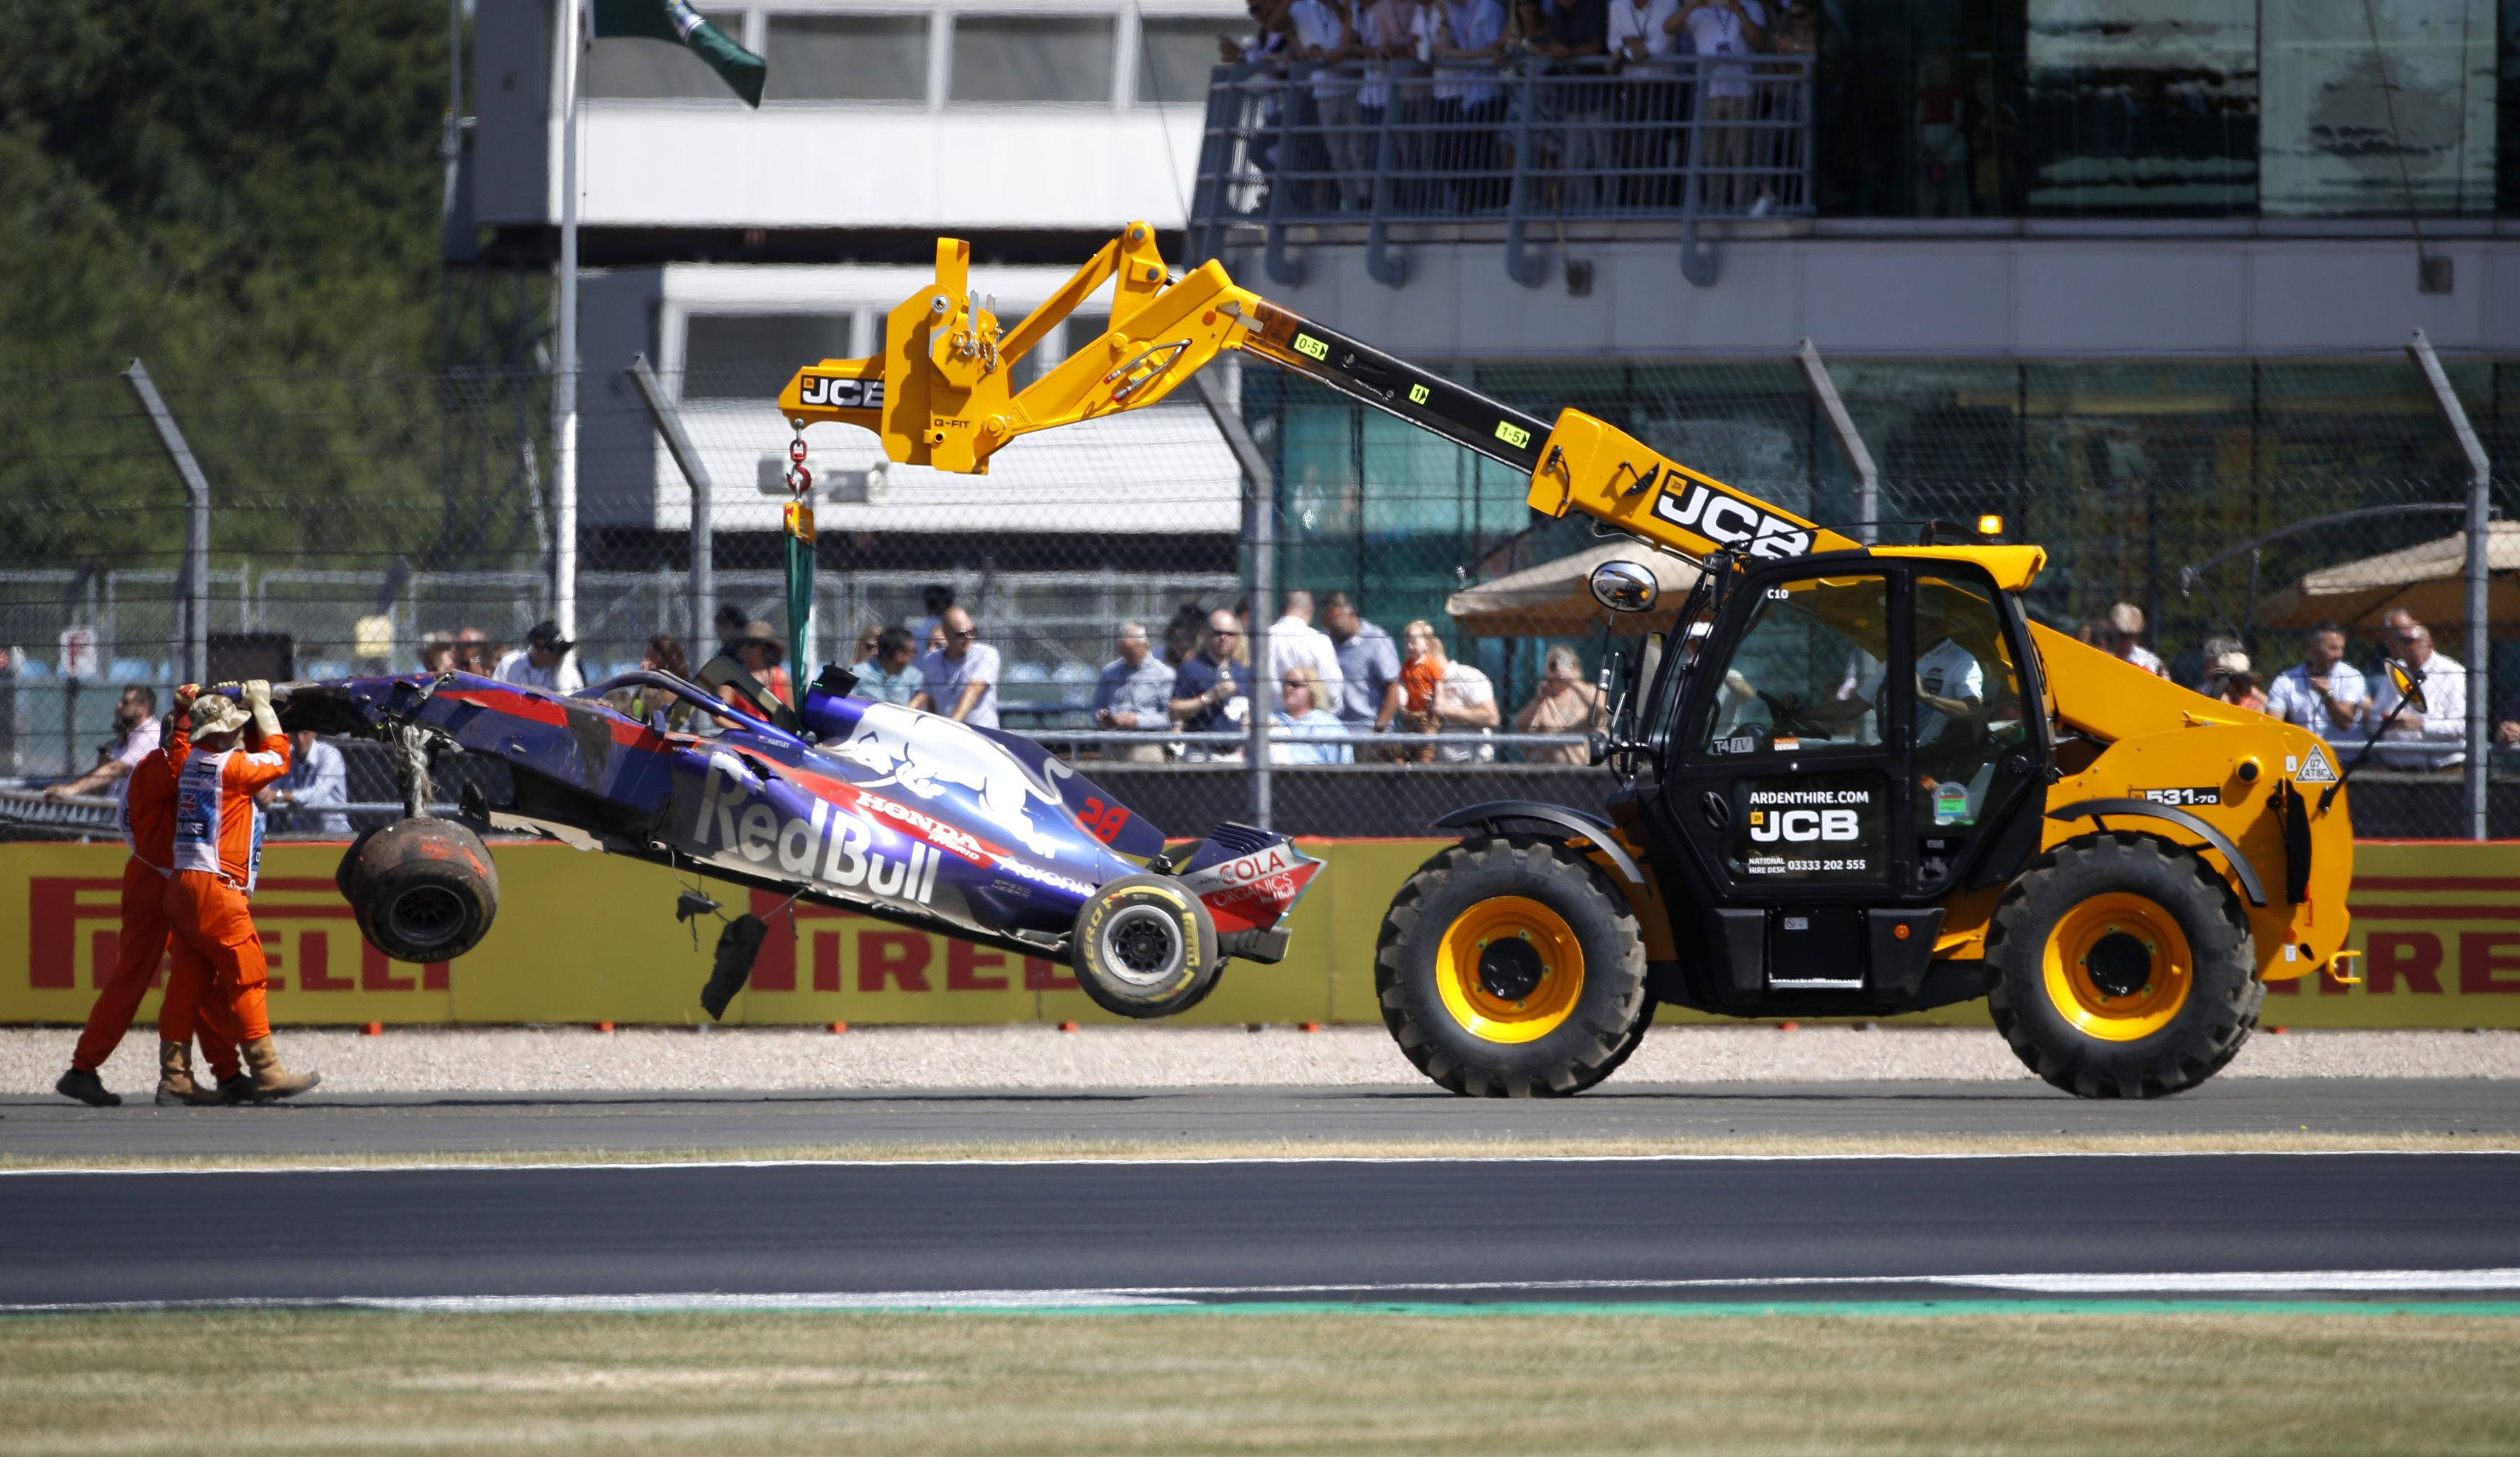 Brendon Hartley's car was lifted off the track